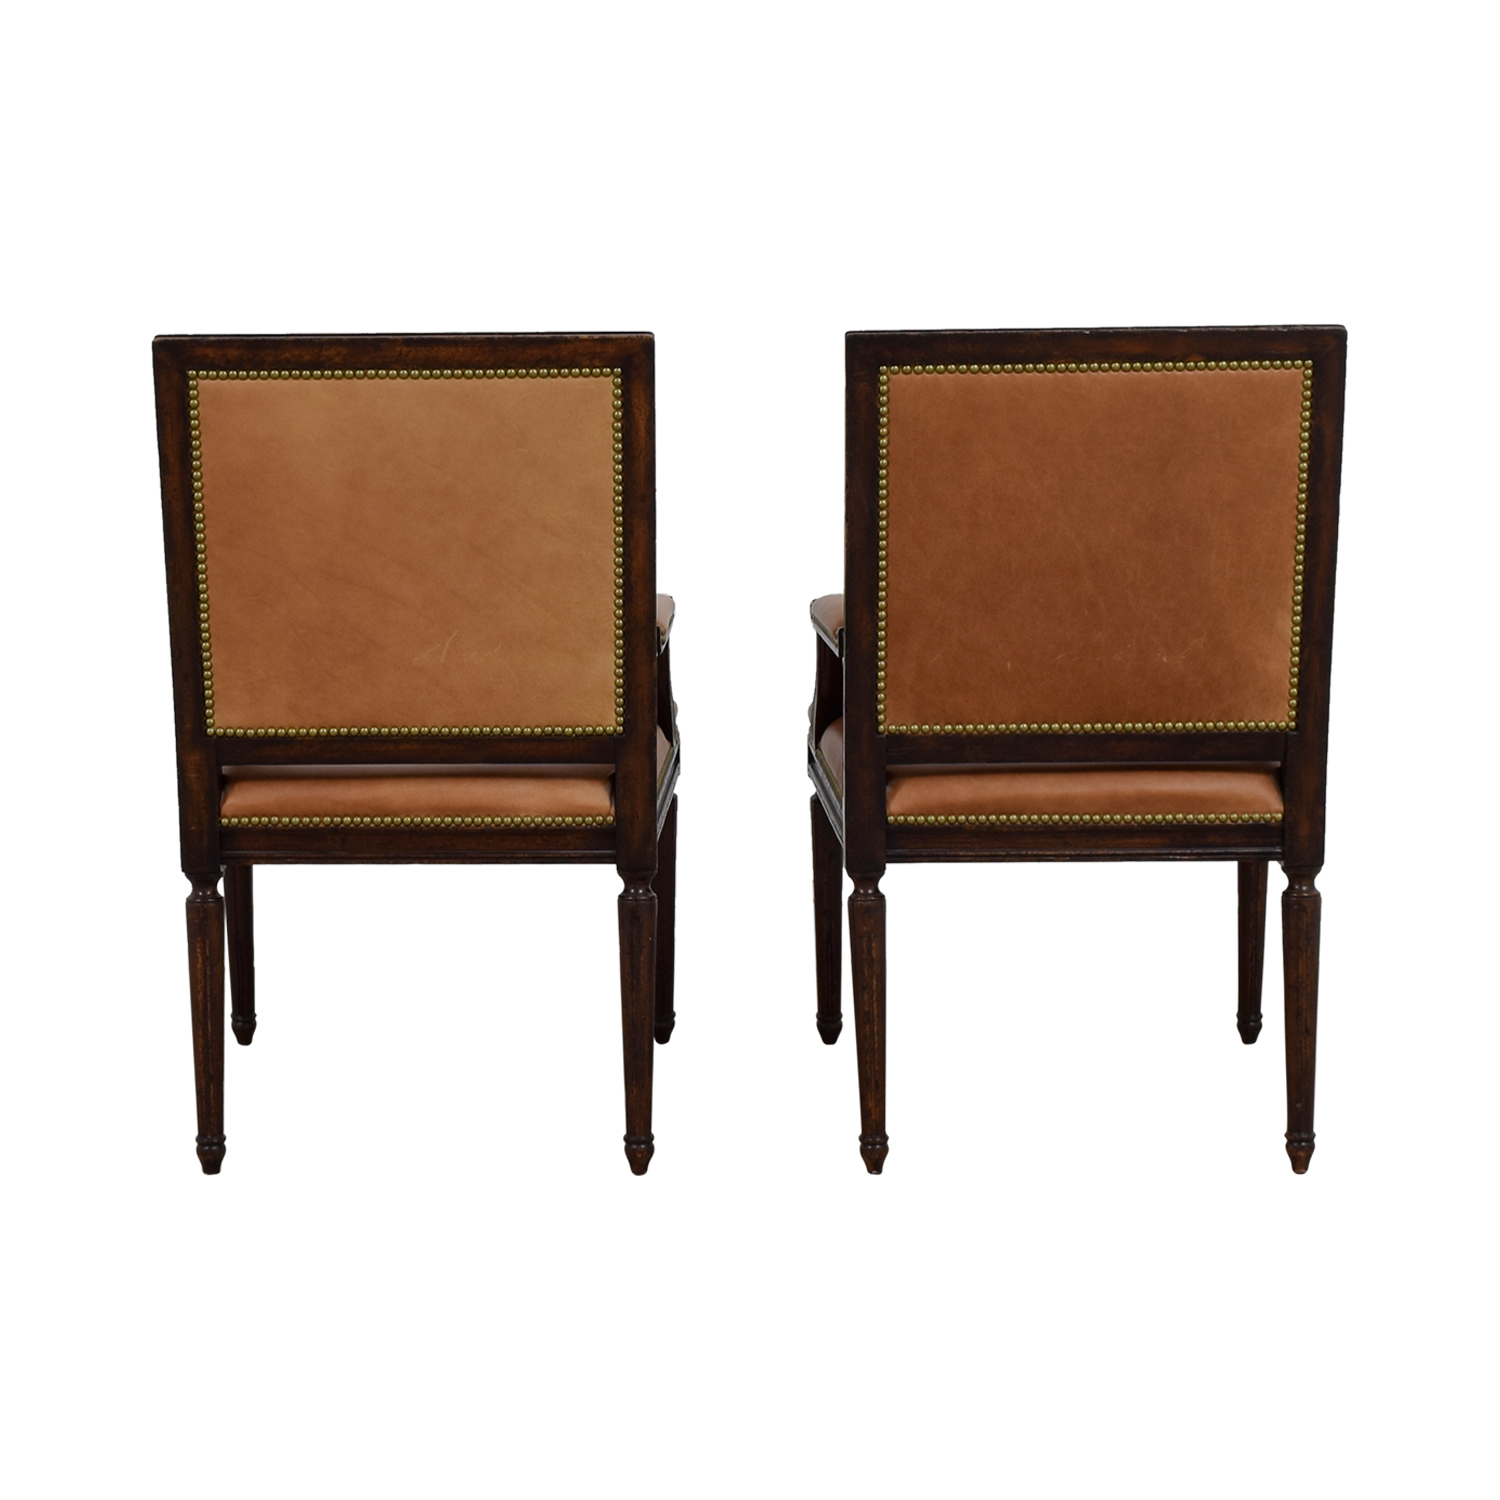 Henredon Henredon Brown Leather Nailhead Accent Chairs nyc